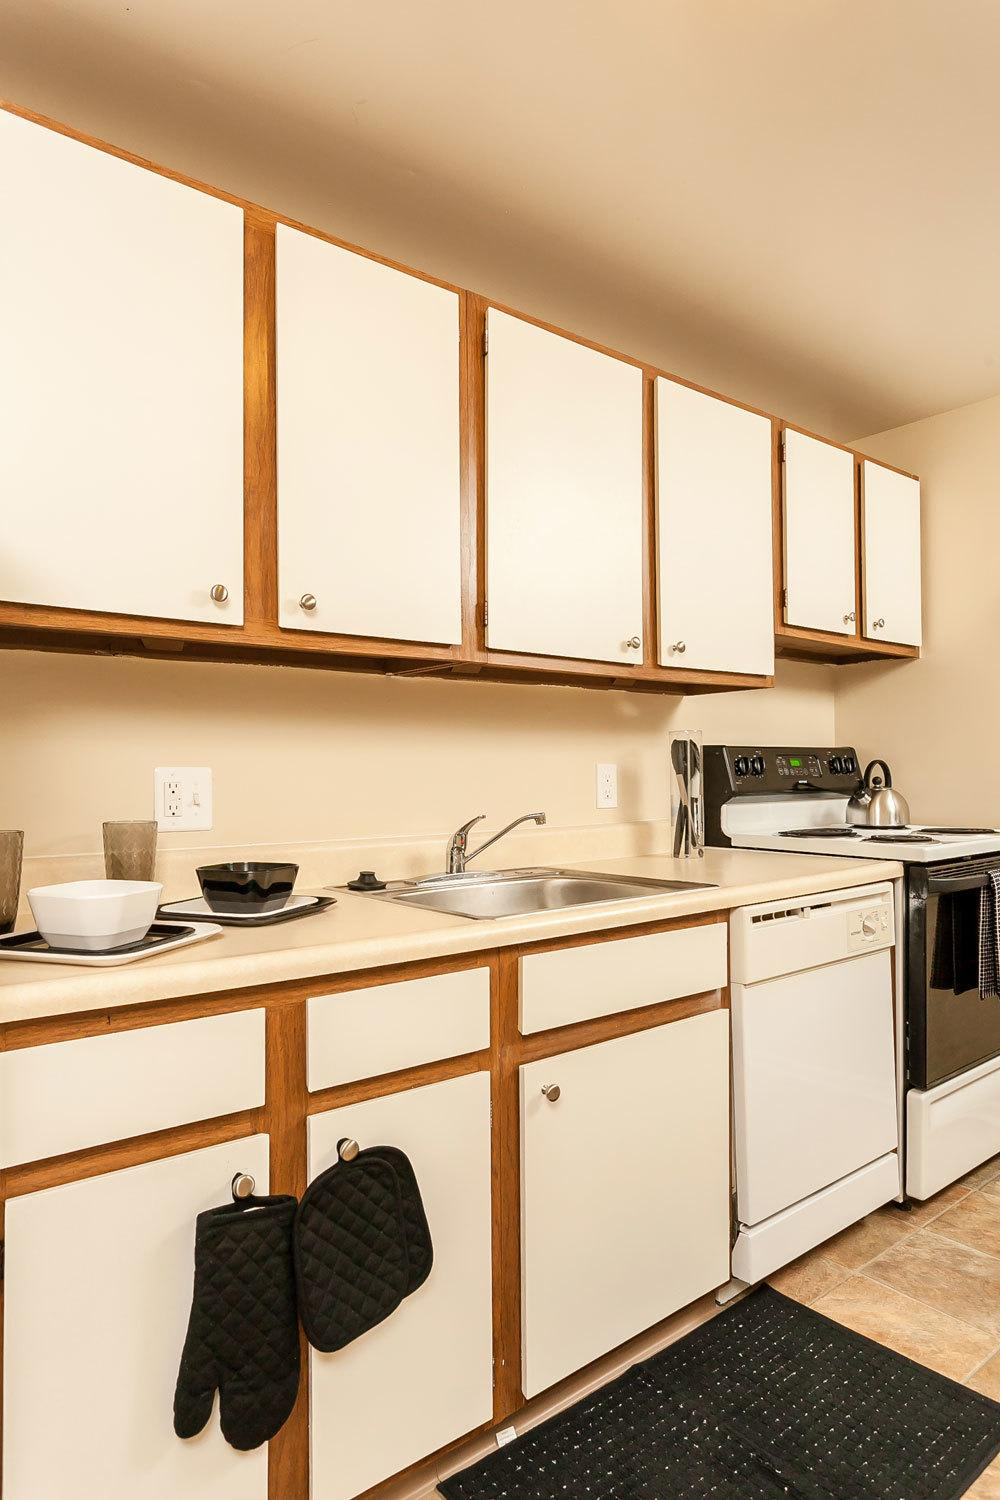 Example kitchen at apartments to rent in Brockport NY